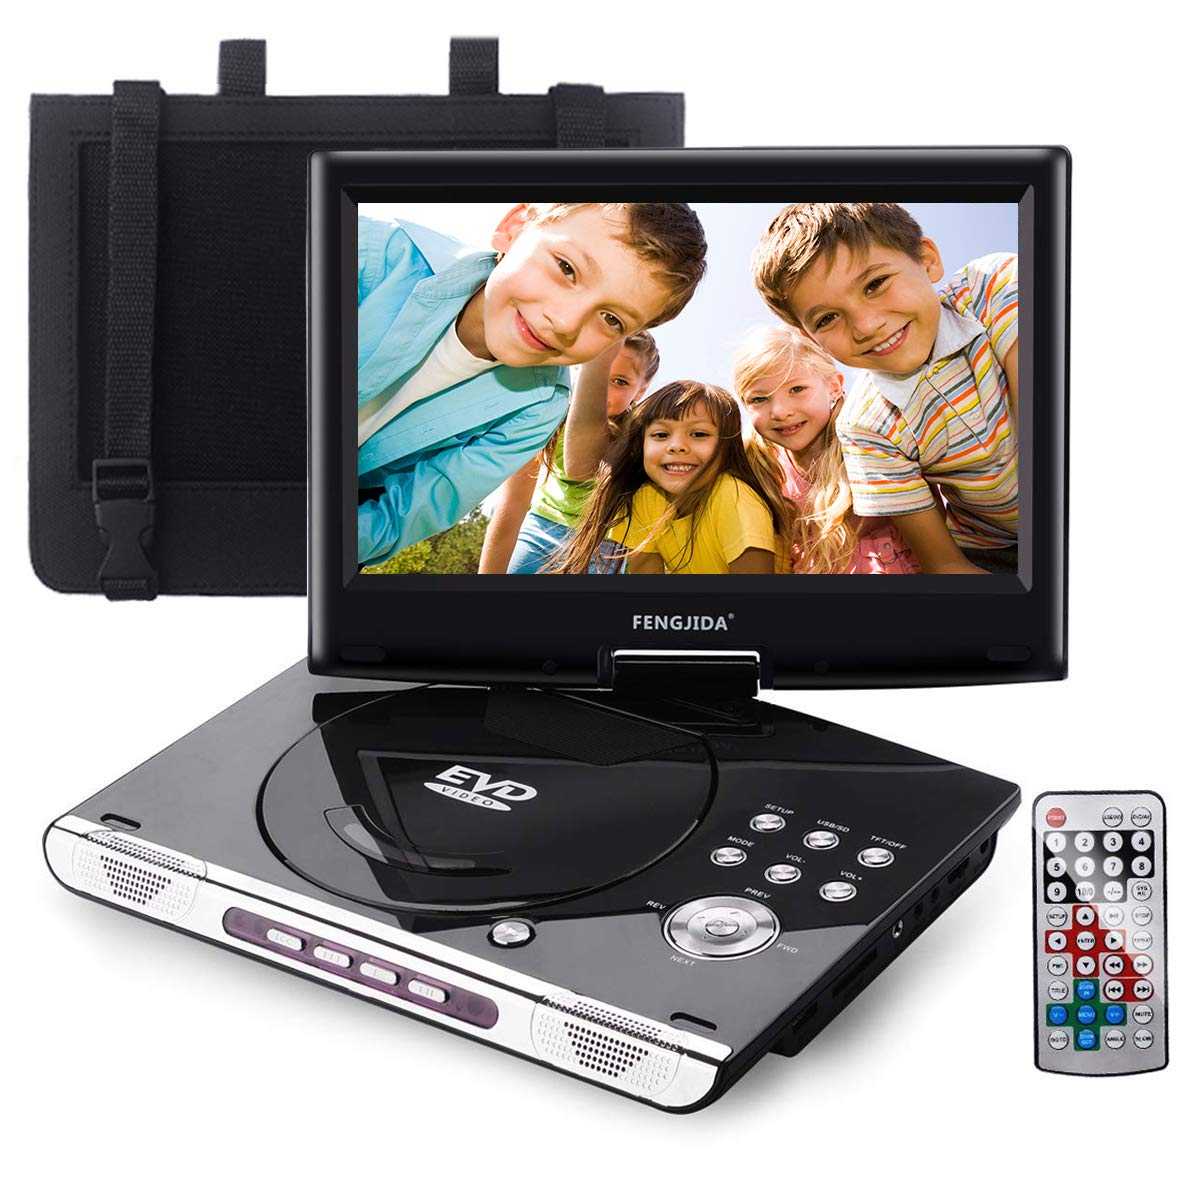 FENGJIDA 10.5'' Portable DVD Player with Headrest Mount Holder, Built-in Rechargeable Battery, 270°Swivel Screen, 5.9 ft Car Charger SD Card Slot and USB Port (Black)